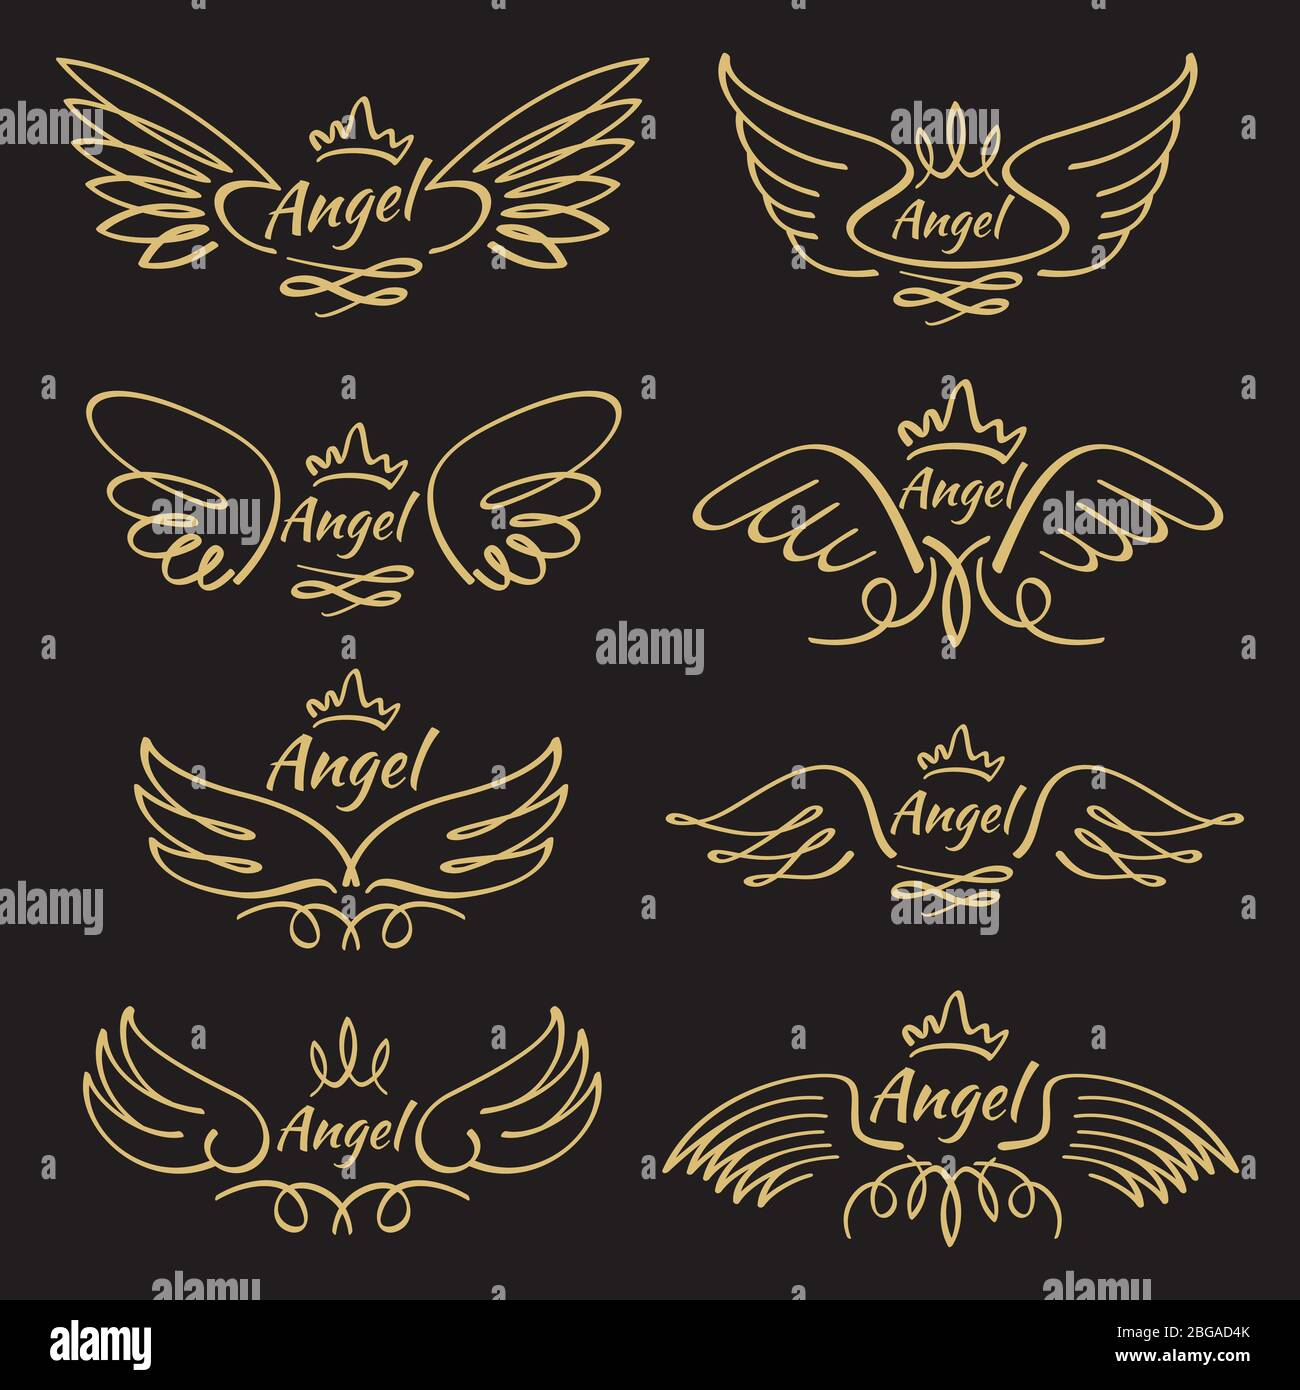 Gold Patterned Angel Wings